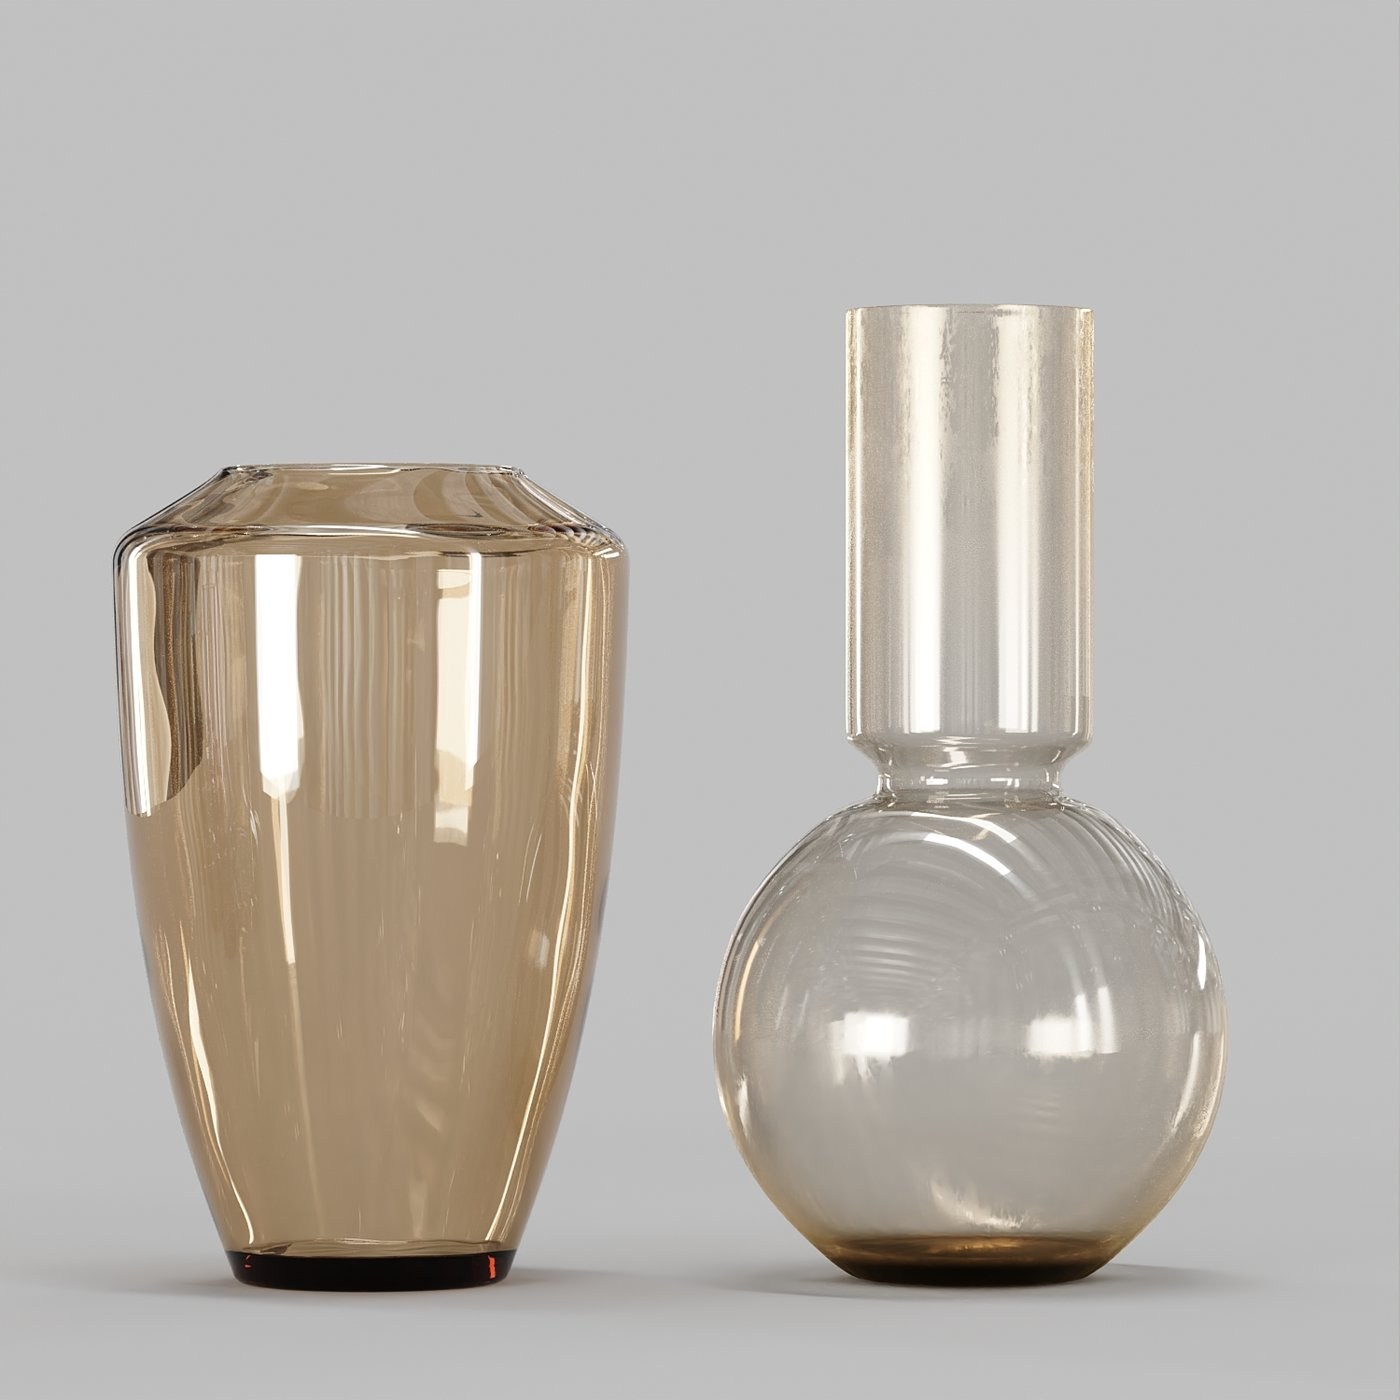 Decorative Set No3 - Vase and Dried Plant Collection